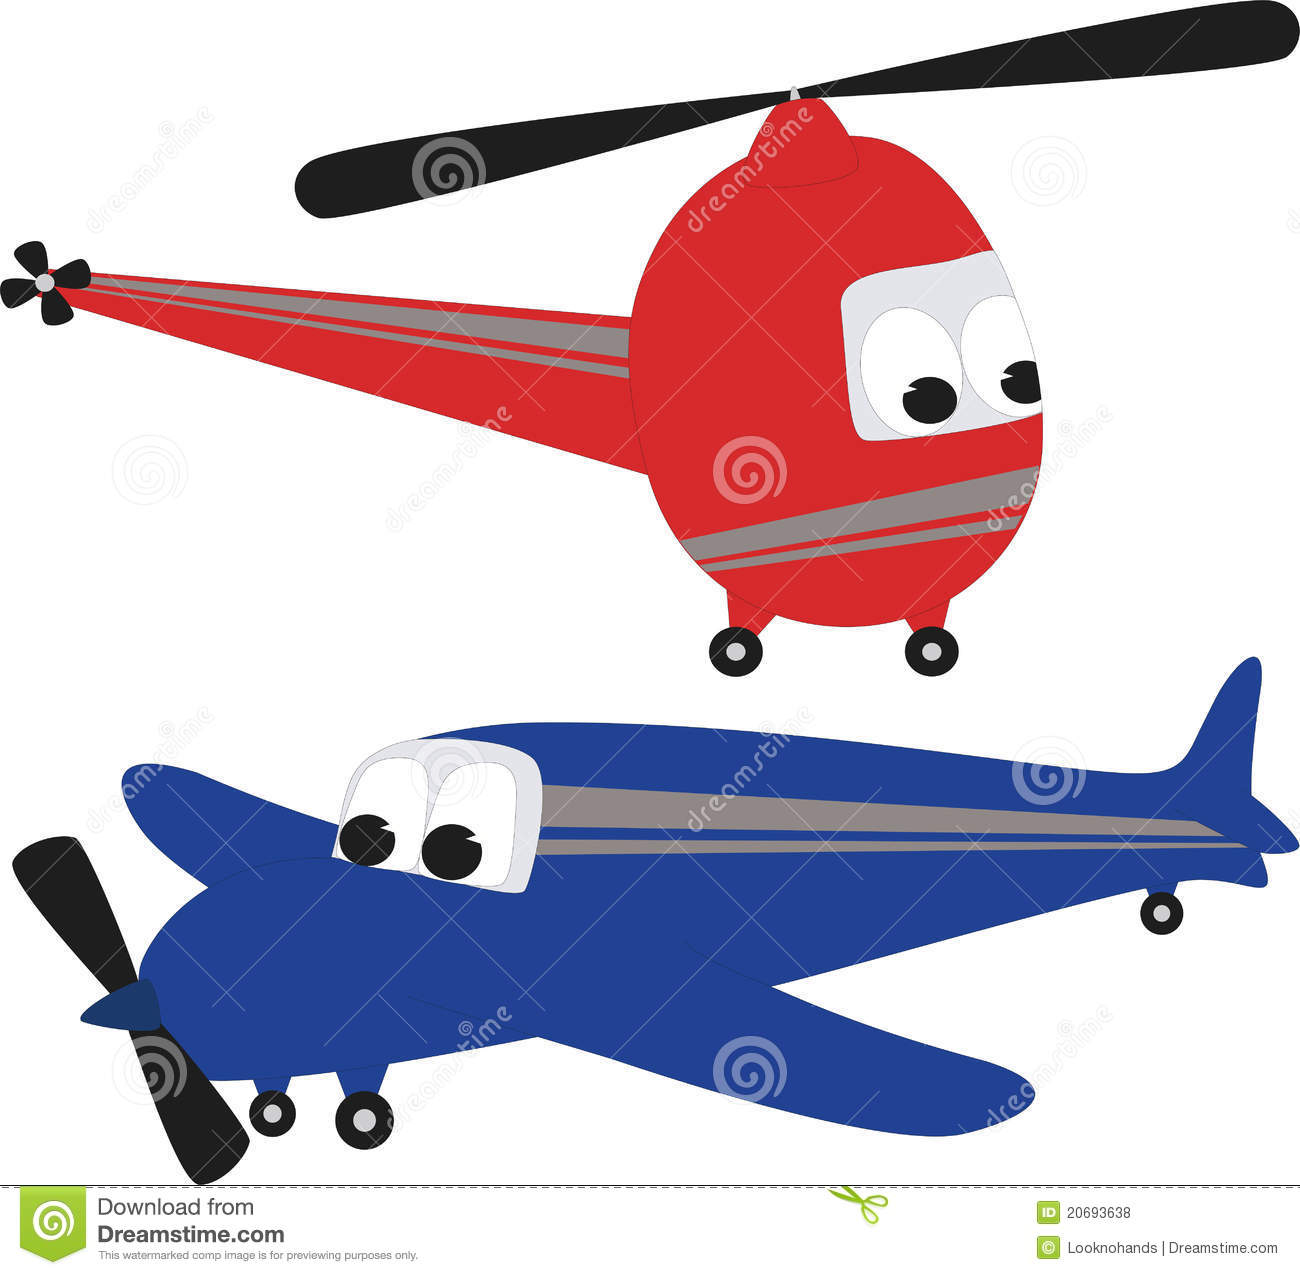 helicopter seats 8 with Royalty Free Stock Photos Helicopter Airplane Image20693638 on Stock Photo Santa Claus Flying Airplane Presents Cartoon Illustration Jolly Character Waving Words Ho Ho Ho Image56946478 besides Pictures Bell Targets Military Market With 525 Heli 440587 further Editorial Stock Photo Inside Chinook Helicopter Particular Aboard Midway Seacarrier Image53204438 besides 362069357182 together with Multibody Dynamics.